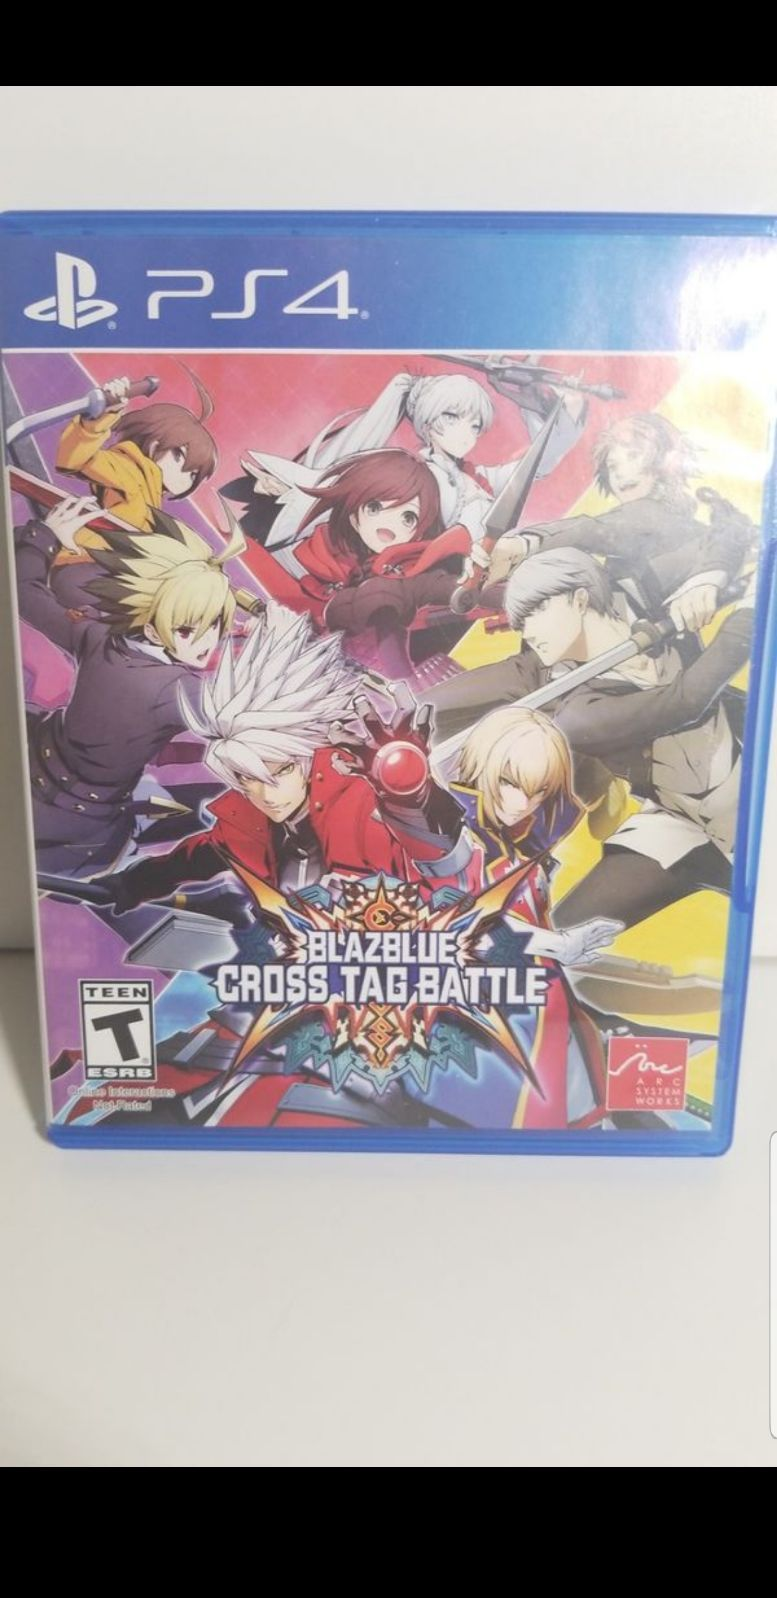 BlazBlue Cross Tag Battle for PS4 fighting game. Like new